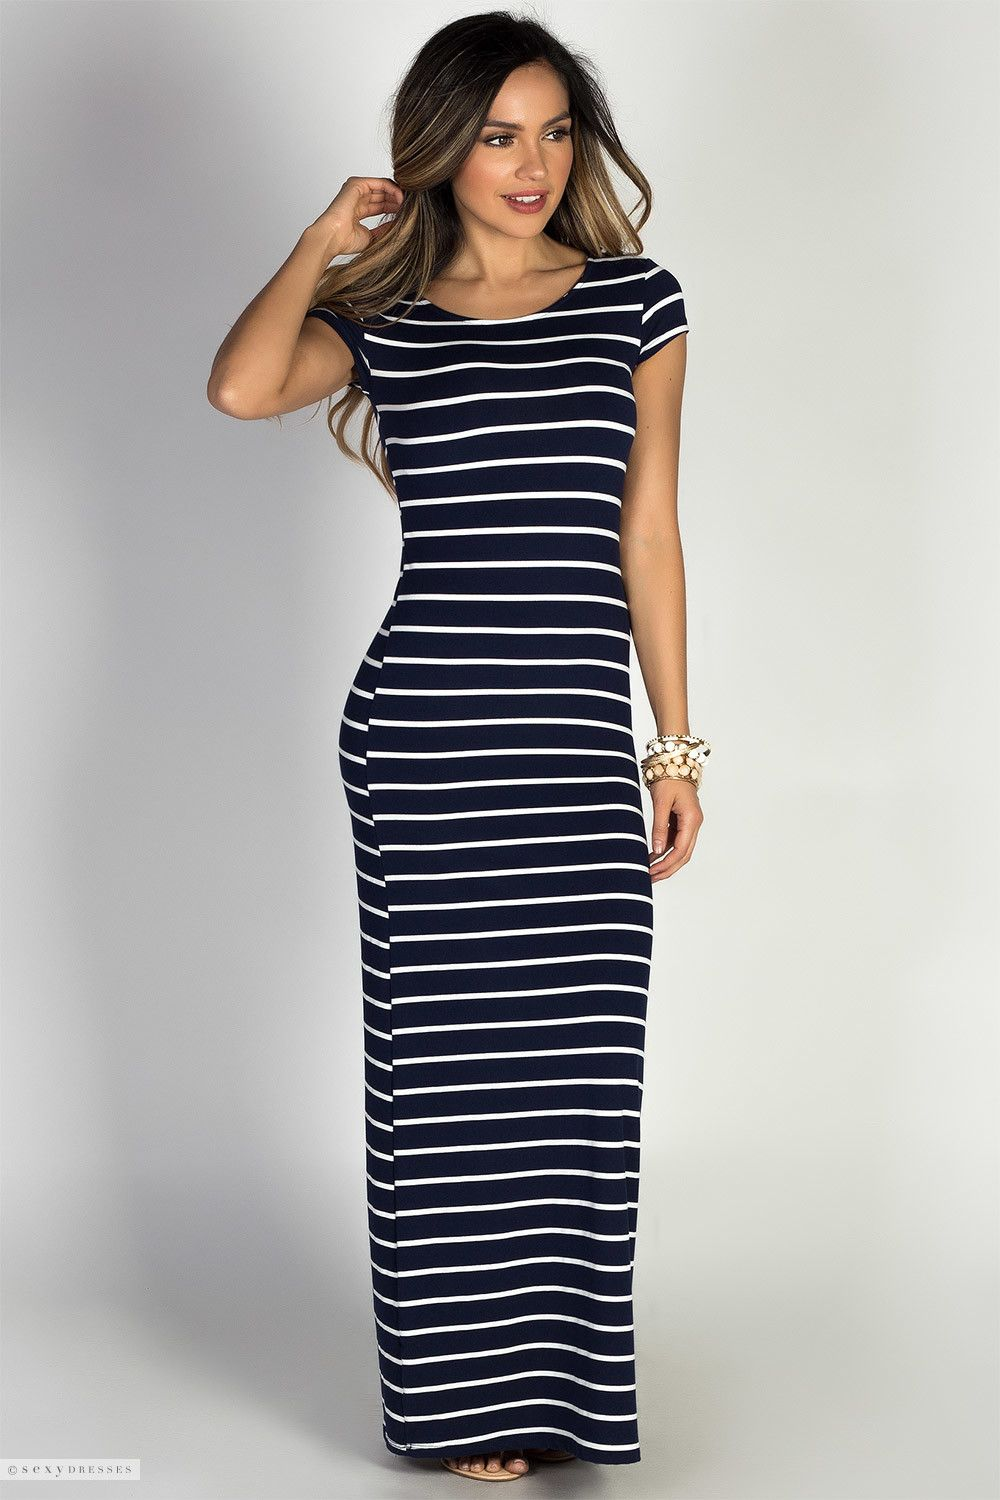 754efbf185e White & Navy Stripe Print Jersey Casual Long Summer Dress with Sleeves